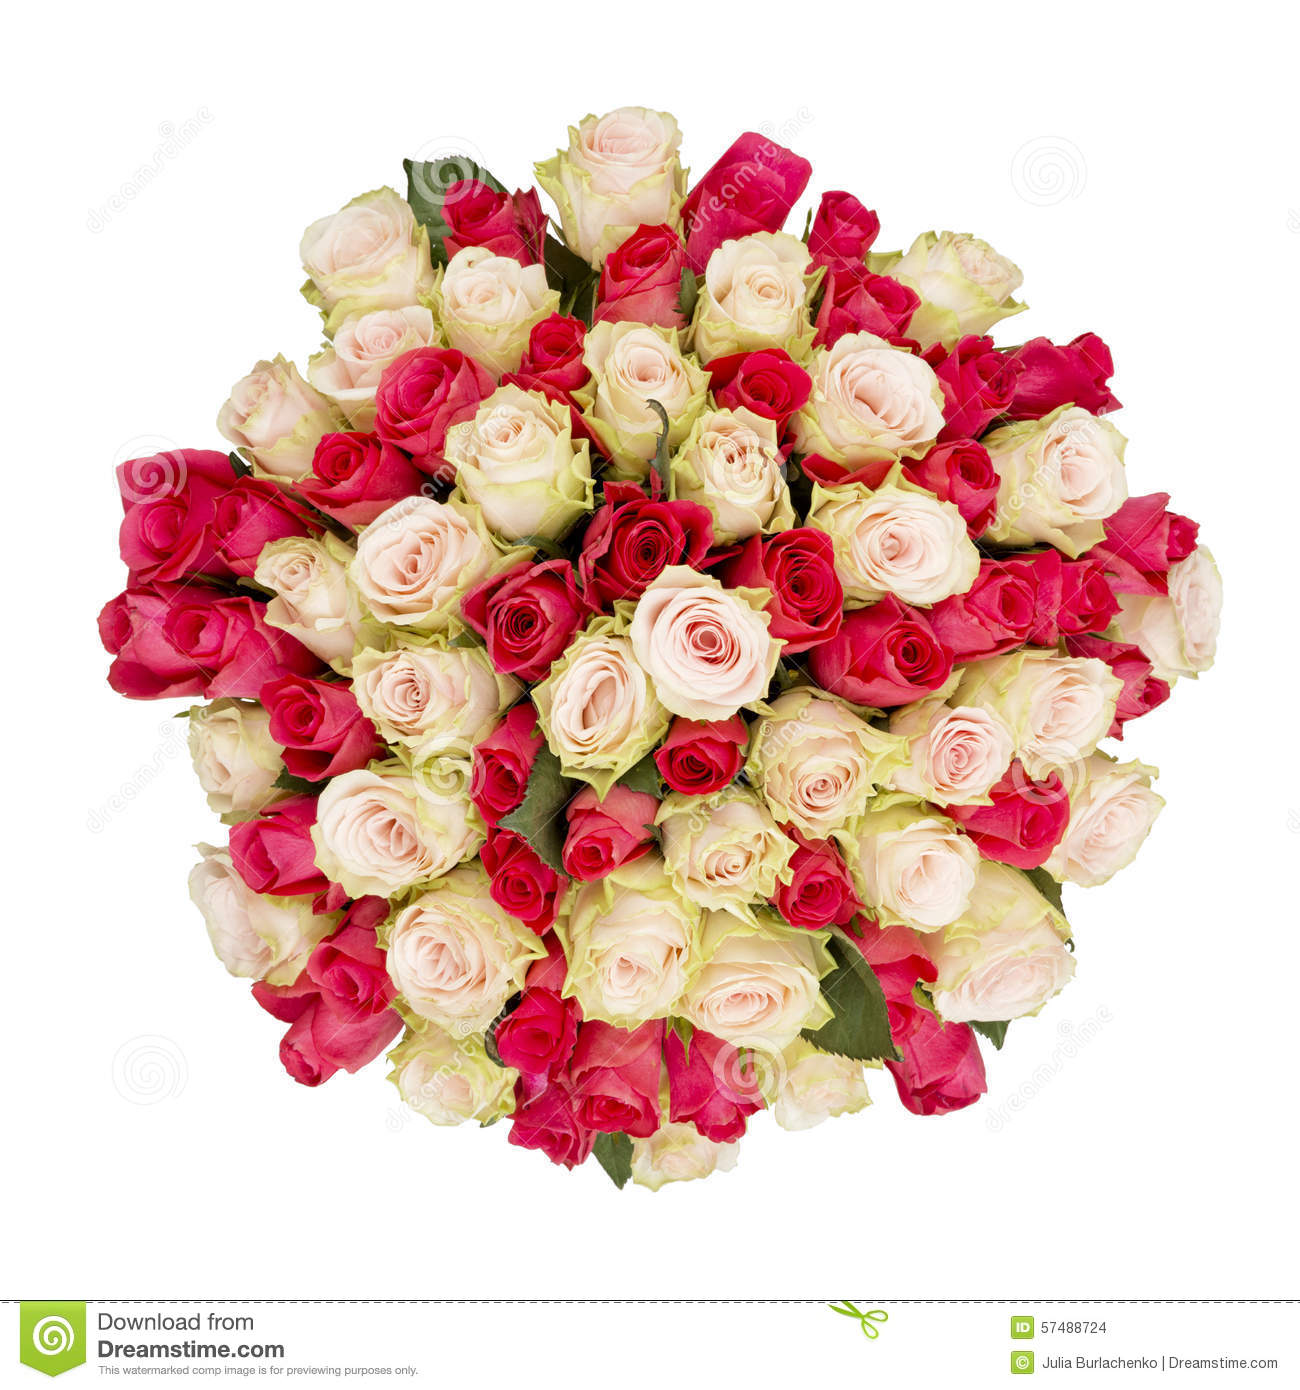 Big bunch of flowers image png black and white download Top View Of Big Bunch Of Flowers Isolated Stock Photo - Image ... png black and white download